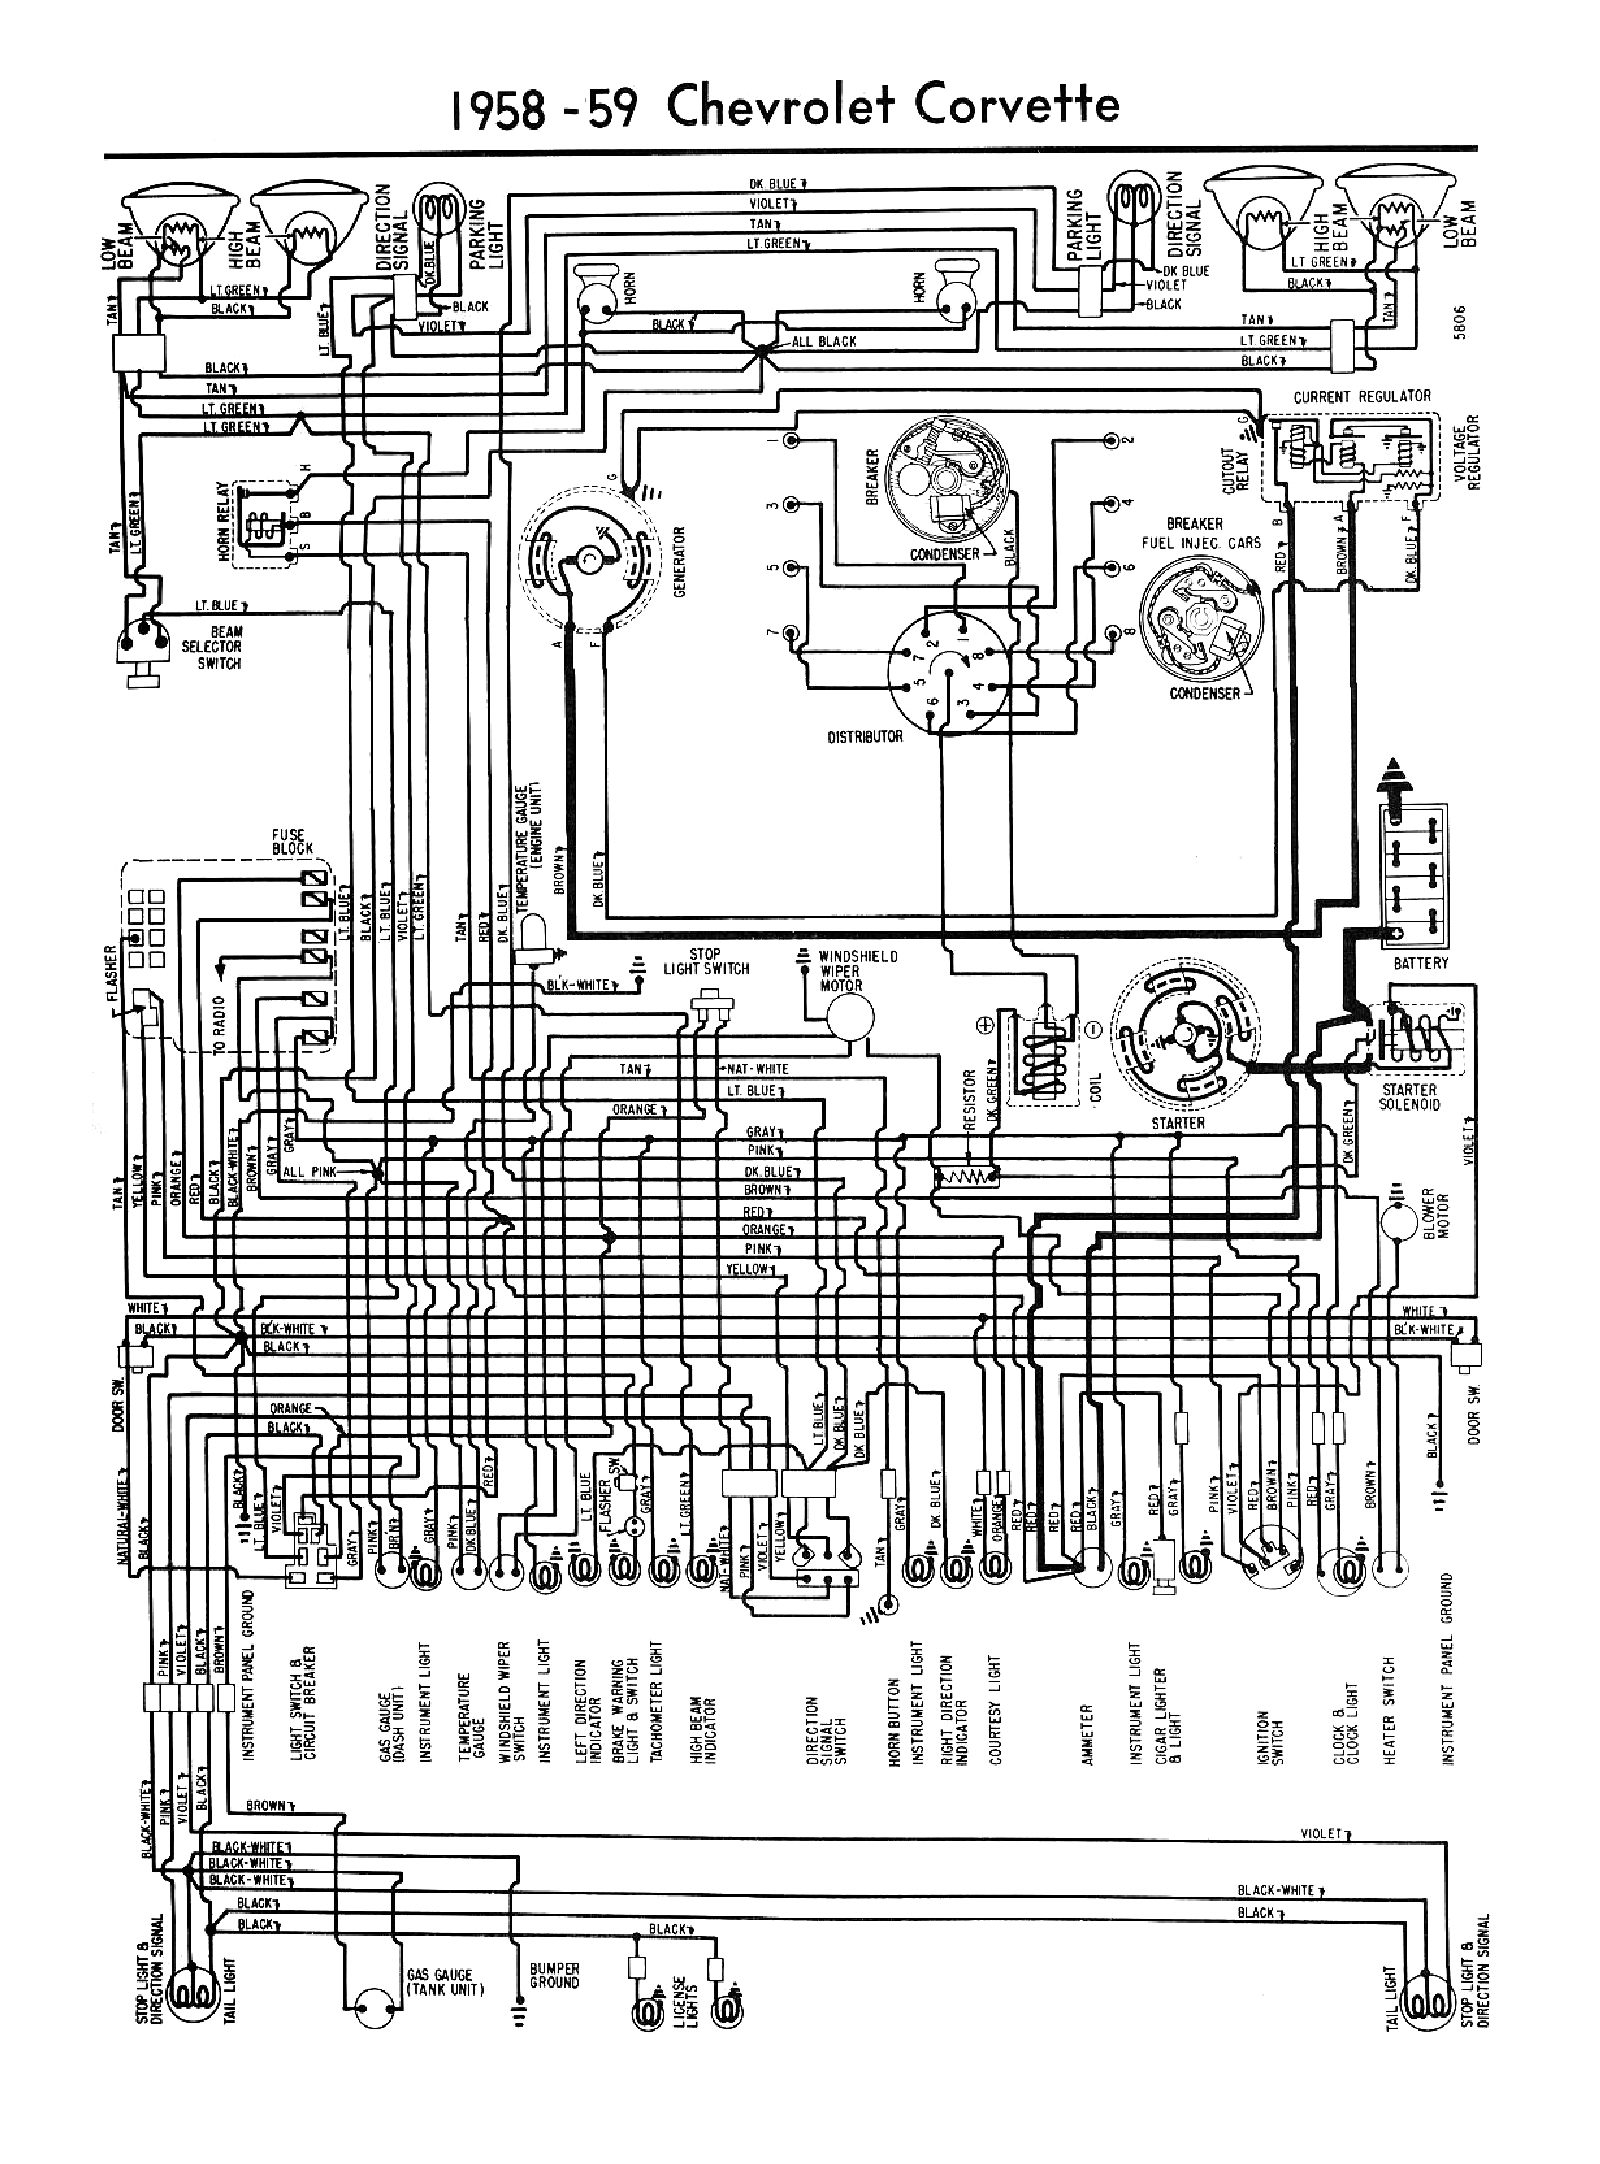 1958 Corvette Wiring Diagram Opinions About Wiring Diagram \u2022 1979  Corvette Vacuum Hose Schematic 1979 Corvette Wiring Schematic